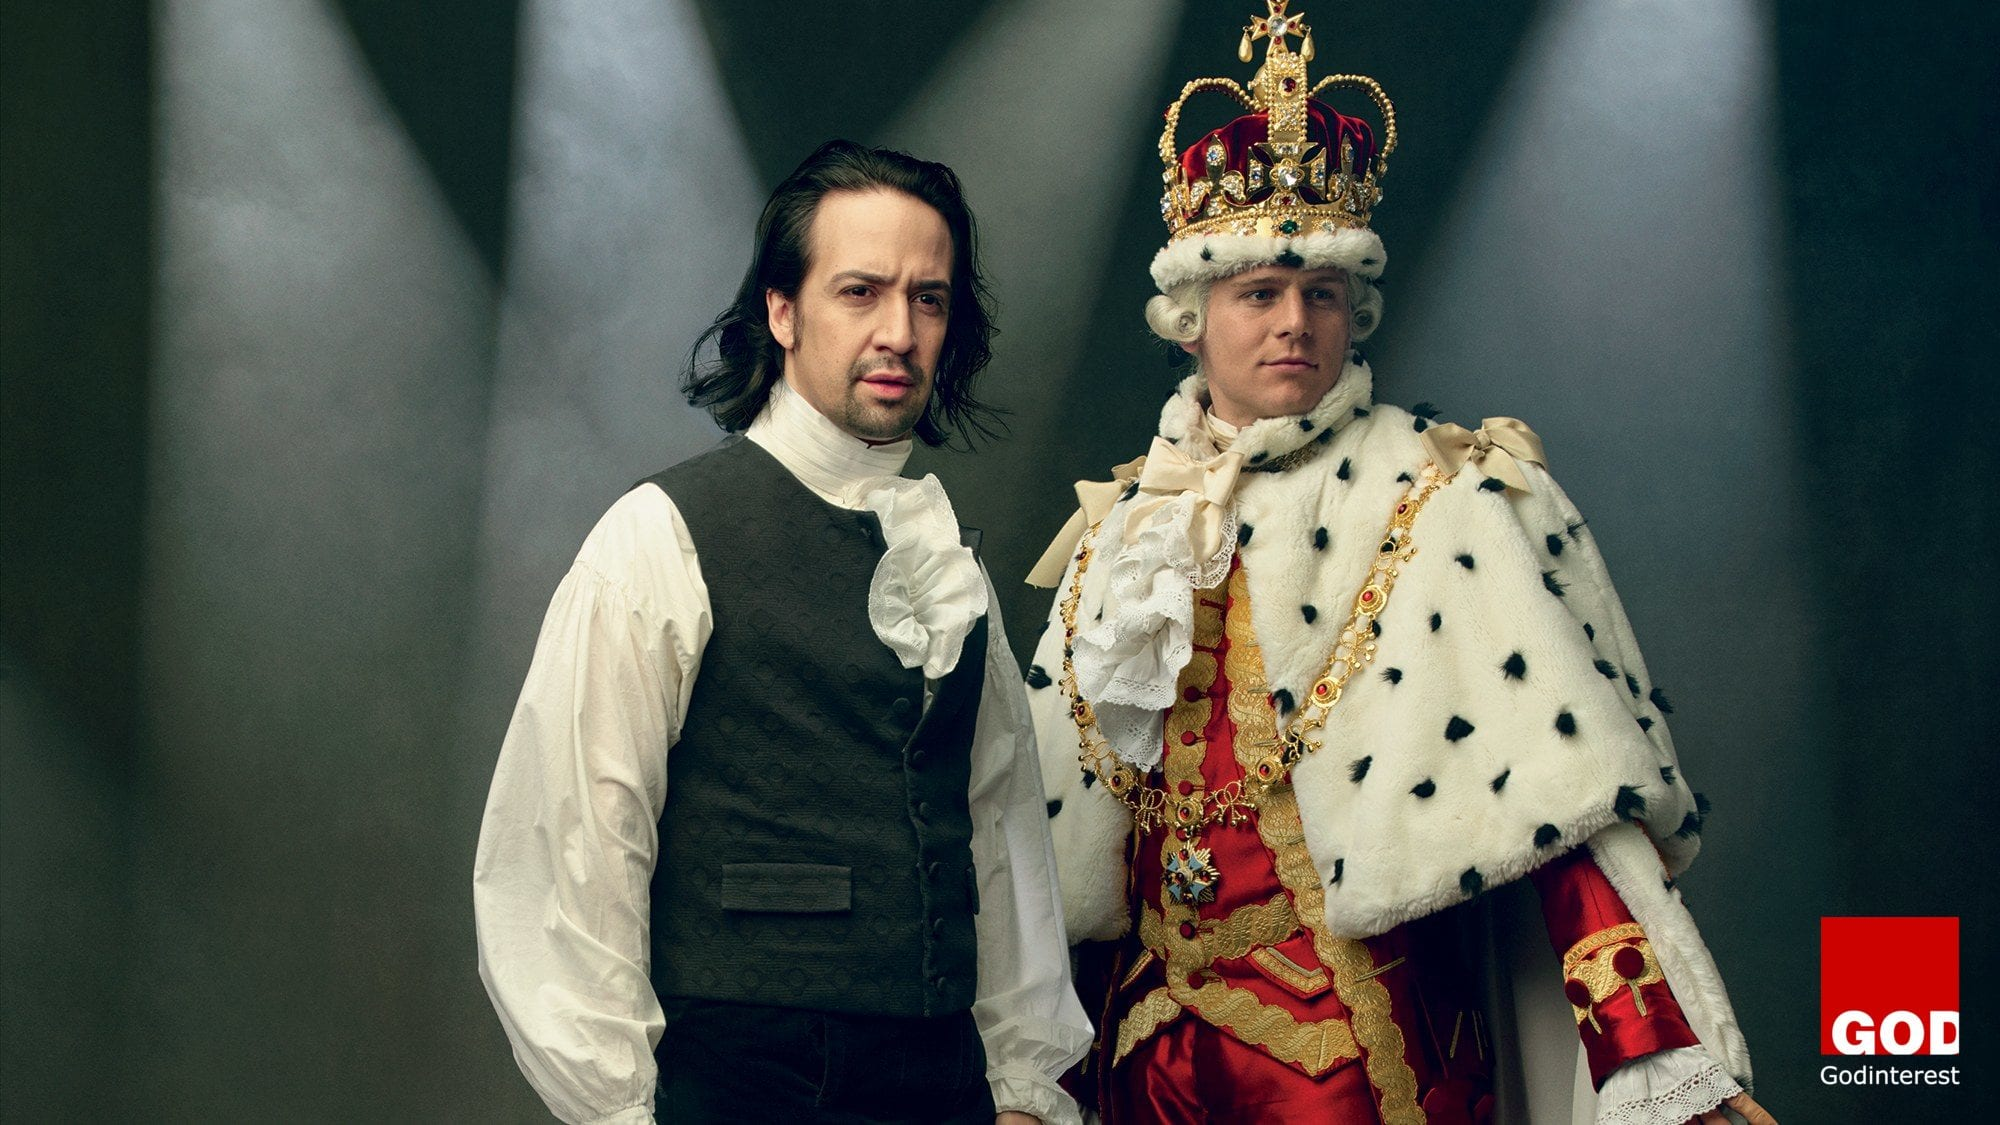 God and Hamilton: How Stories Transform Us